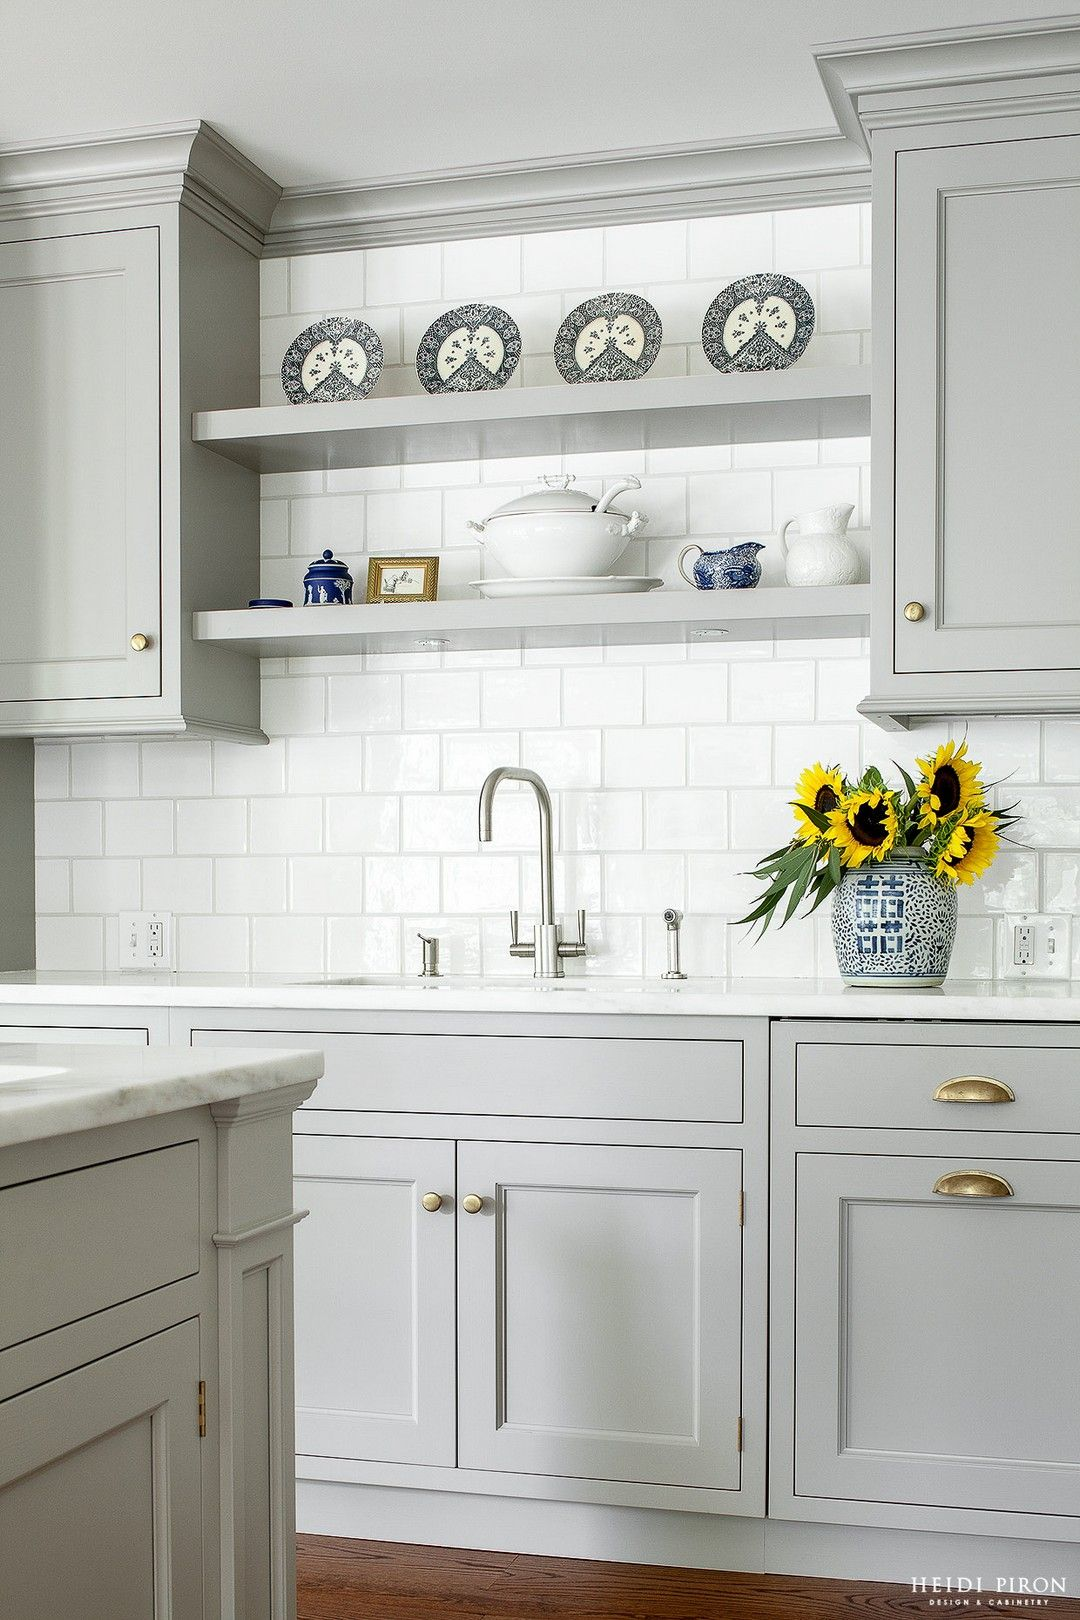 modern white and gray kitchen. 99 Modern White And Grey Kitchen Cabinets Design Ideas Http://philanthropyalamode.com/99-modern-white-grey-kitchen-cabinets-design -ideas/ Gray